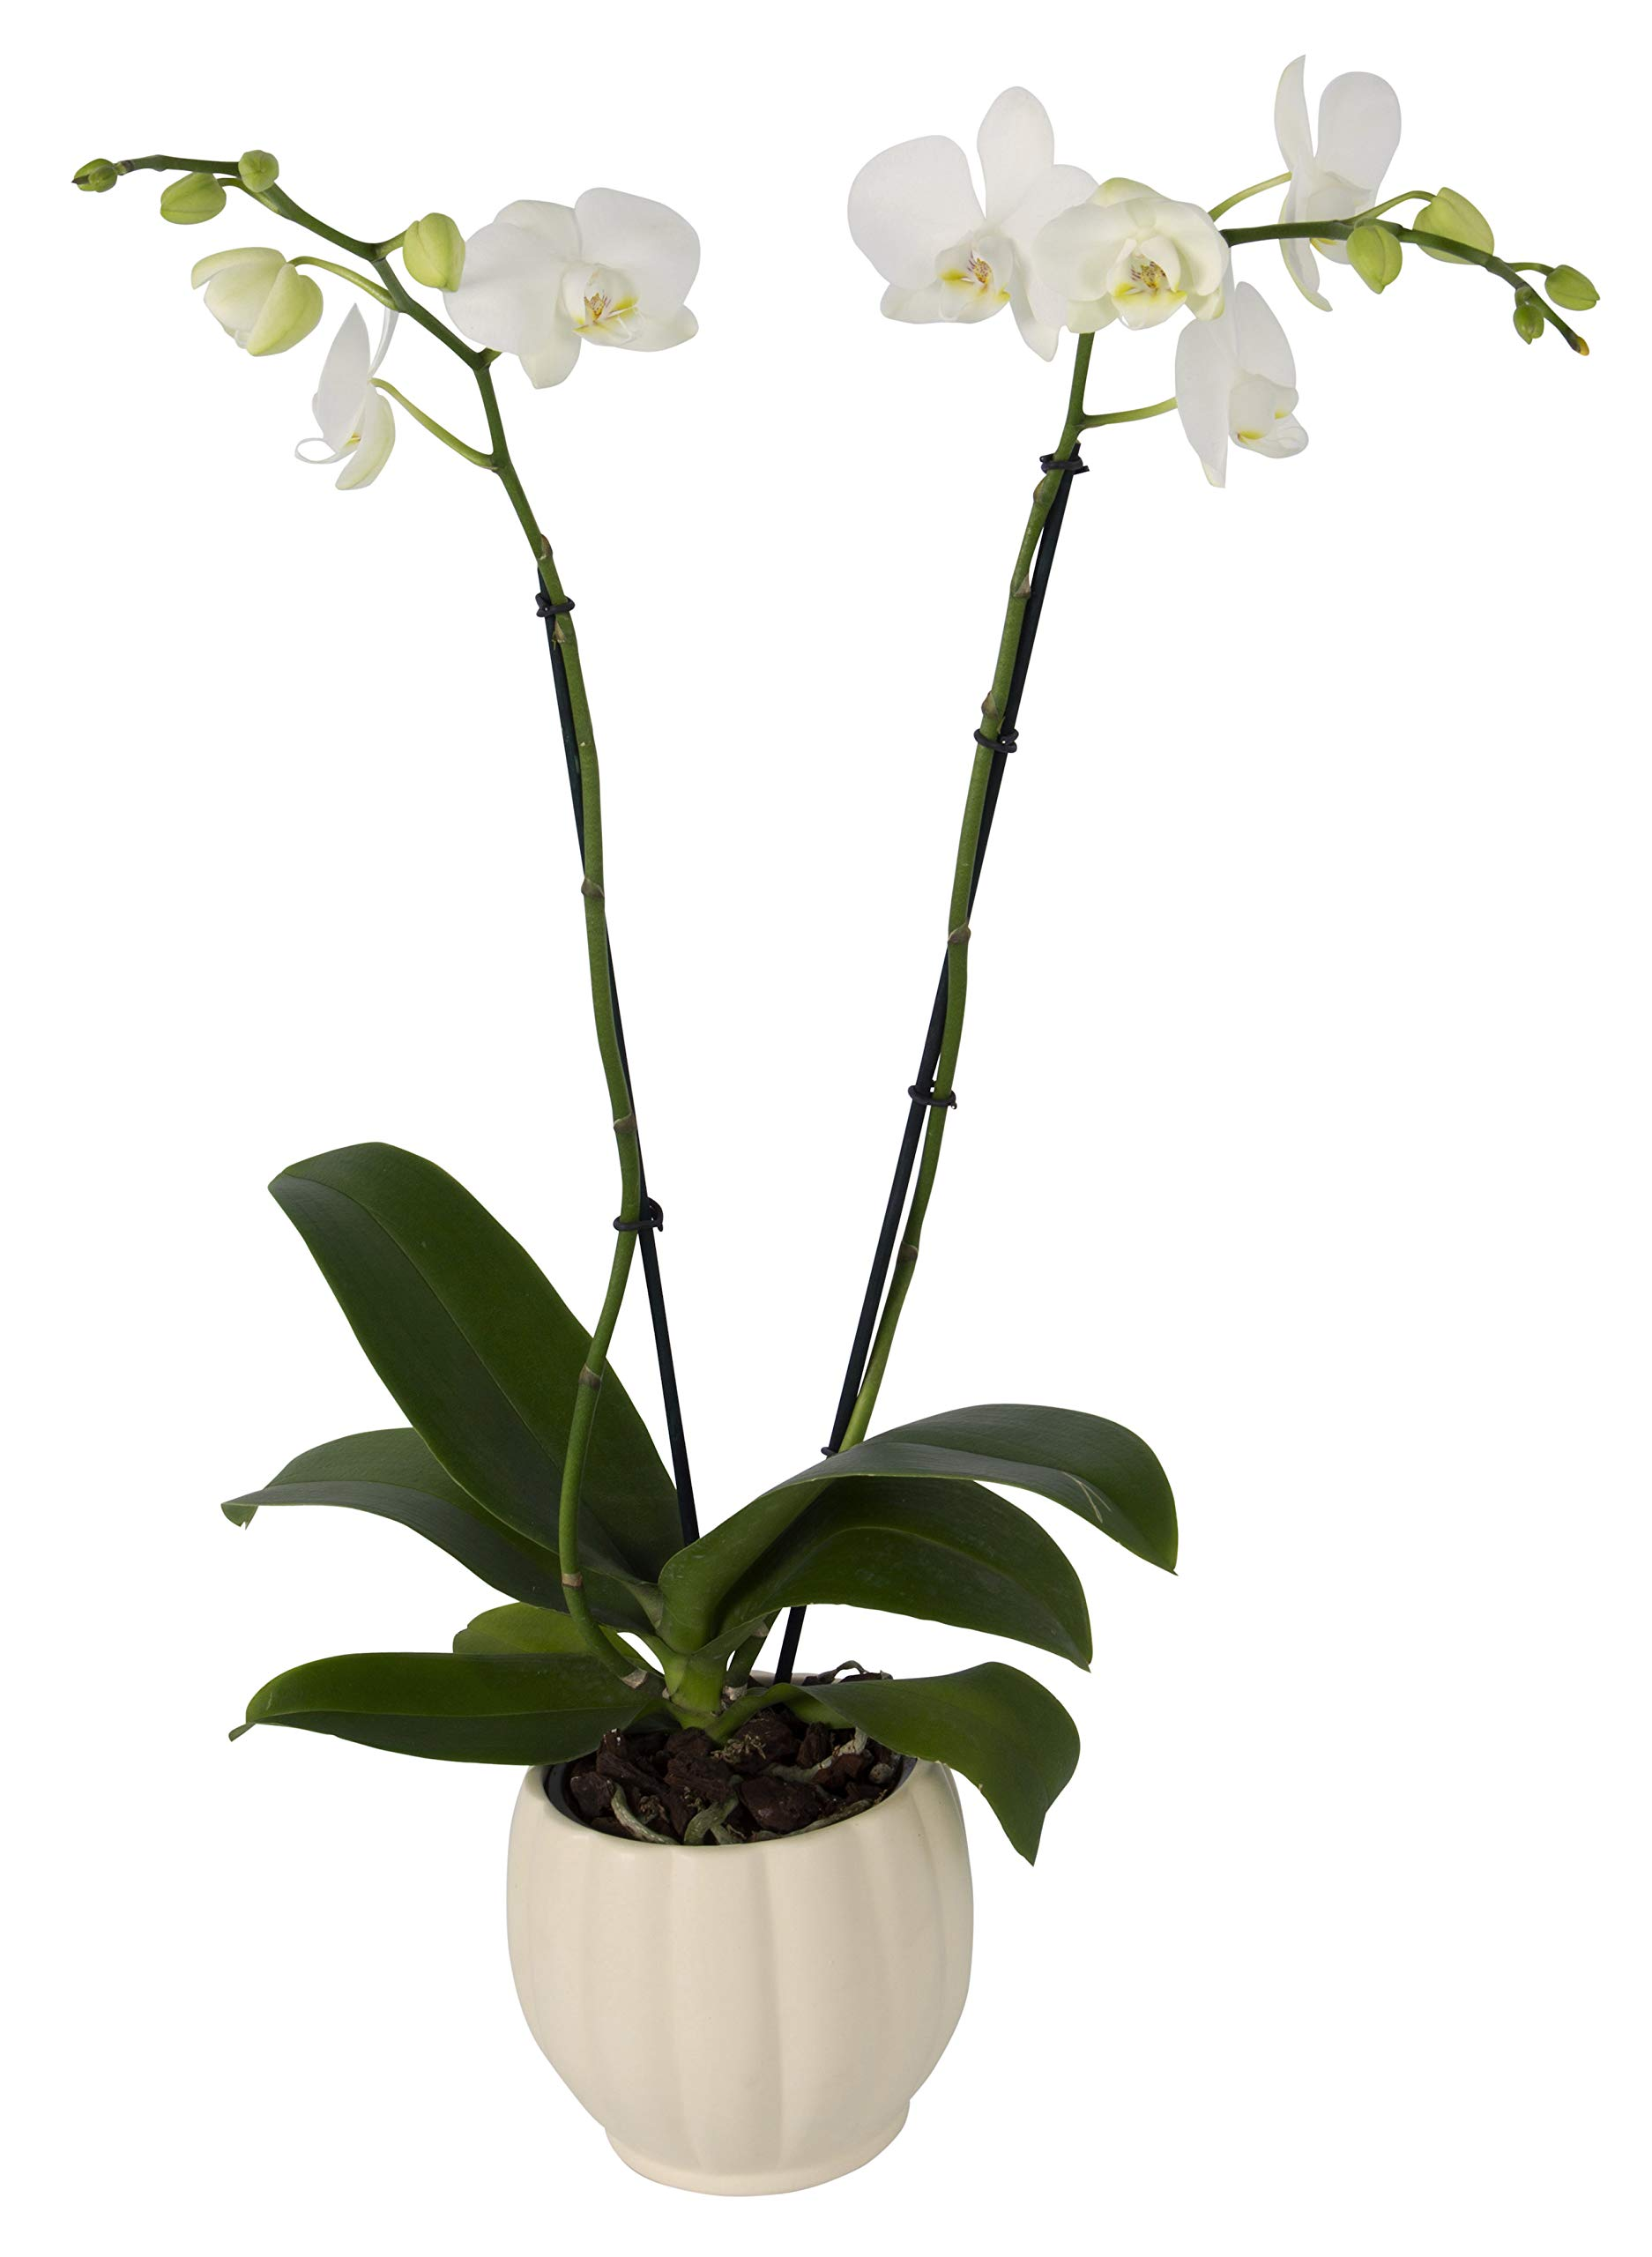 Color Orchids Live Blooming Double Stem Phalaenopsis Orchid Plant in Ceramic Pot, 20'' - 24'' Tall White by Color Orchids